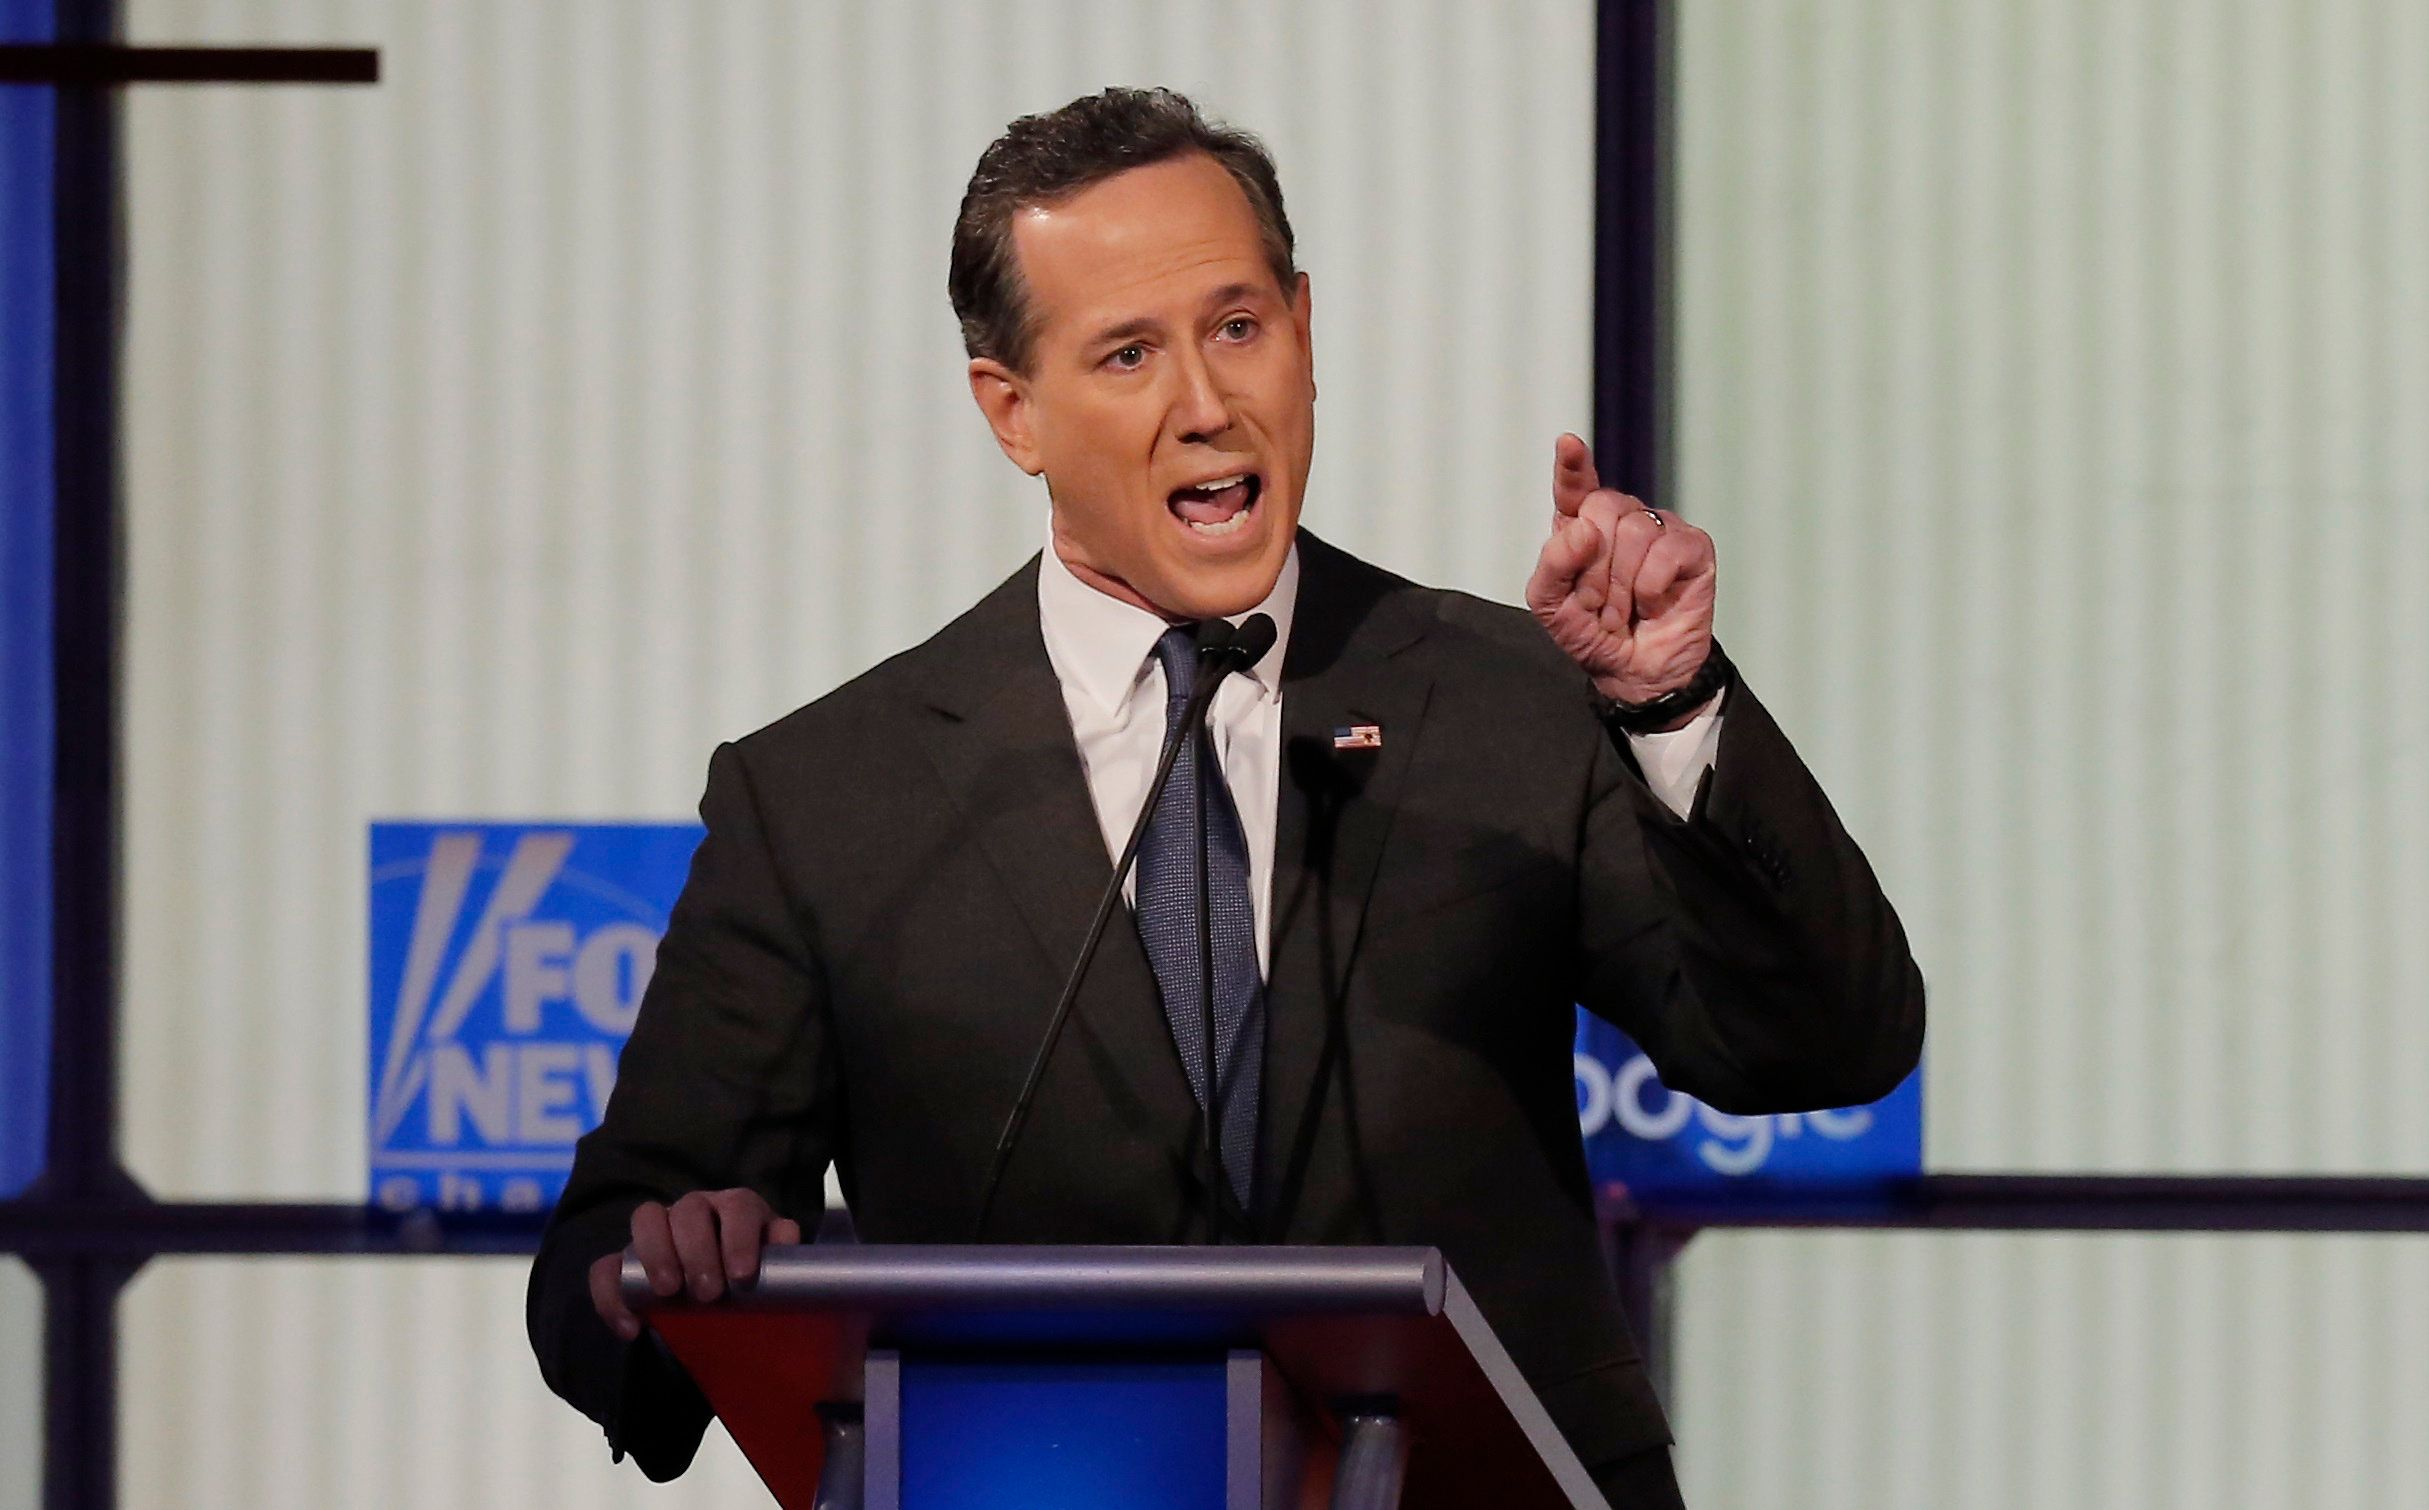 Republican U.S. presidential candidate and former U.S. Senator Rick Santorum speaks during a forum for the lower polling candidates held by Fox News before the U.S. Republican presidential candidates debate in Des Moines, Iowa January 28, 2016. REUTERS/Jim Young